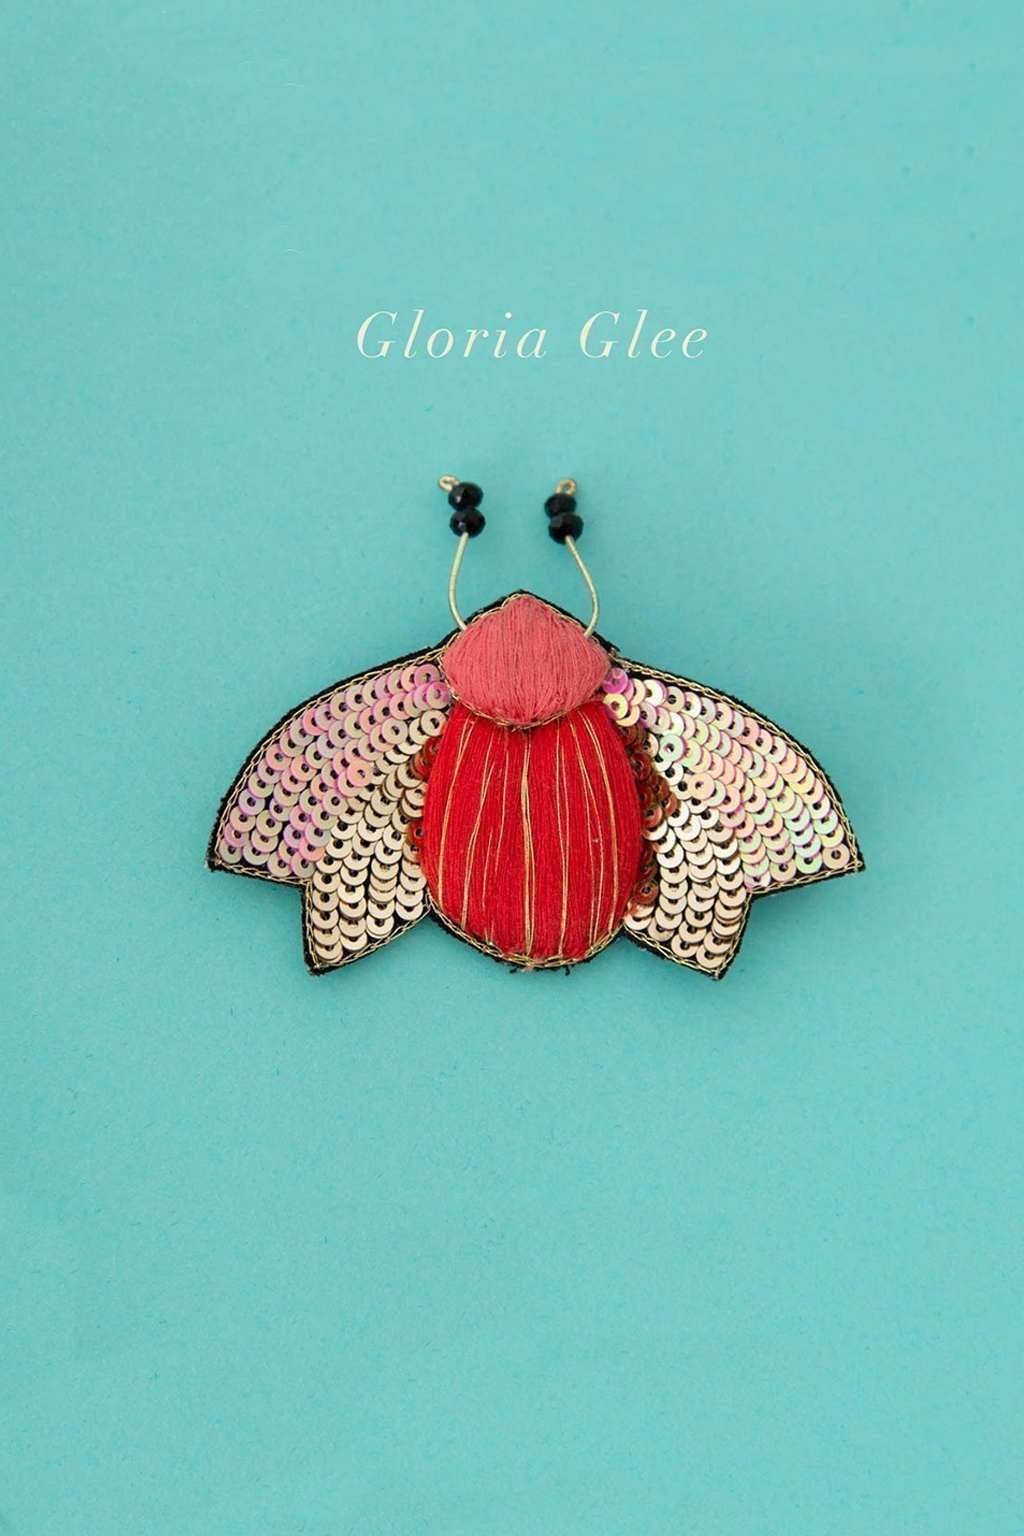 Ruby Olive-Delicate Brooch - Gloria Glee-Mott and Mulberry